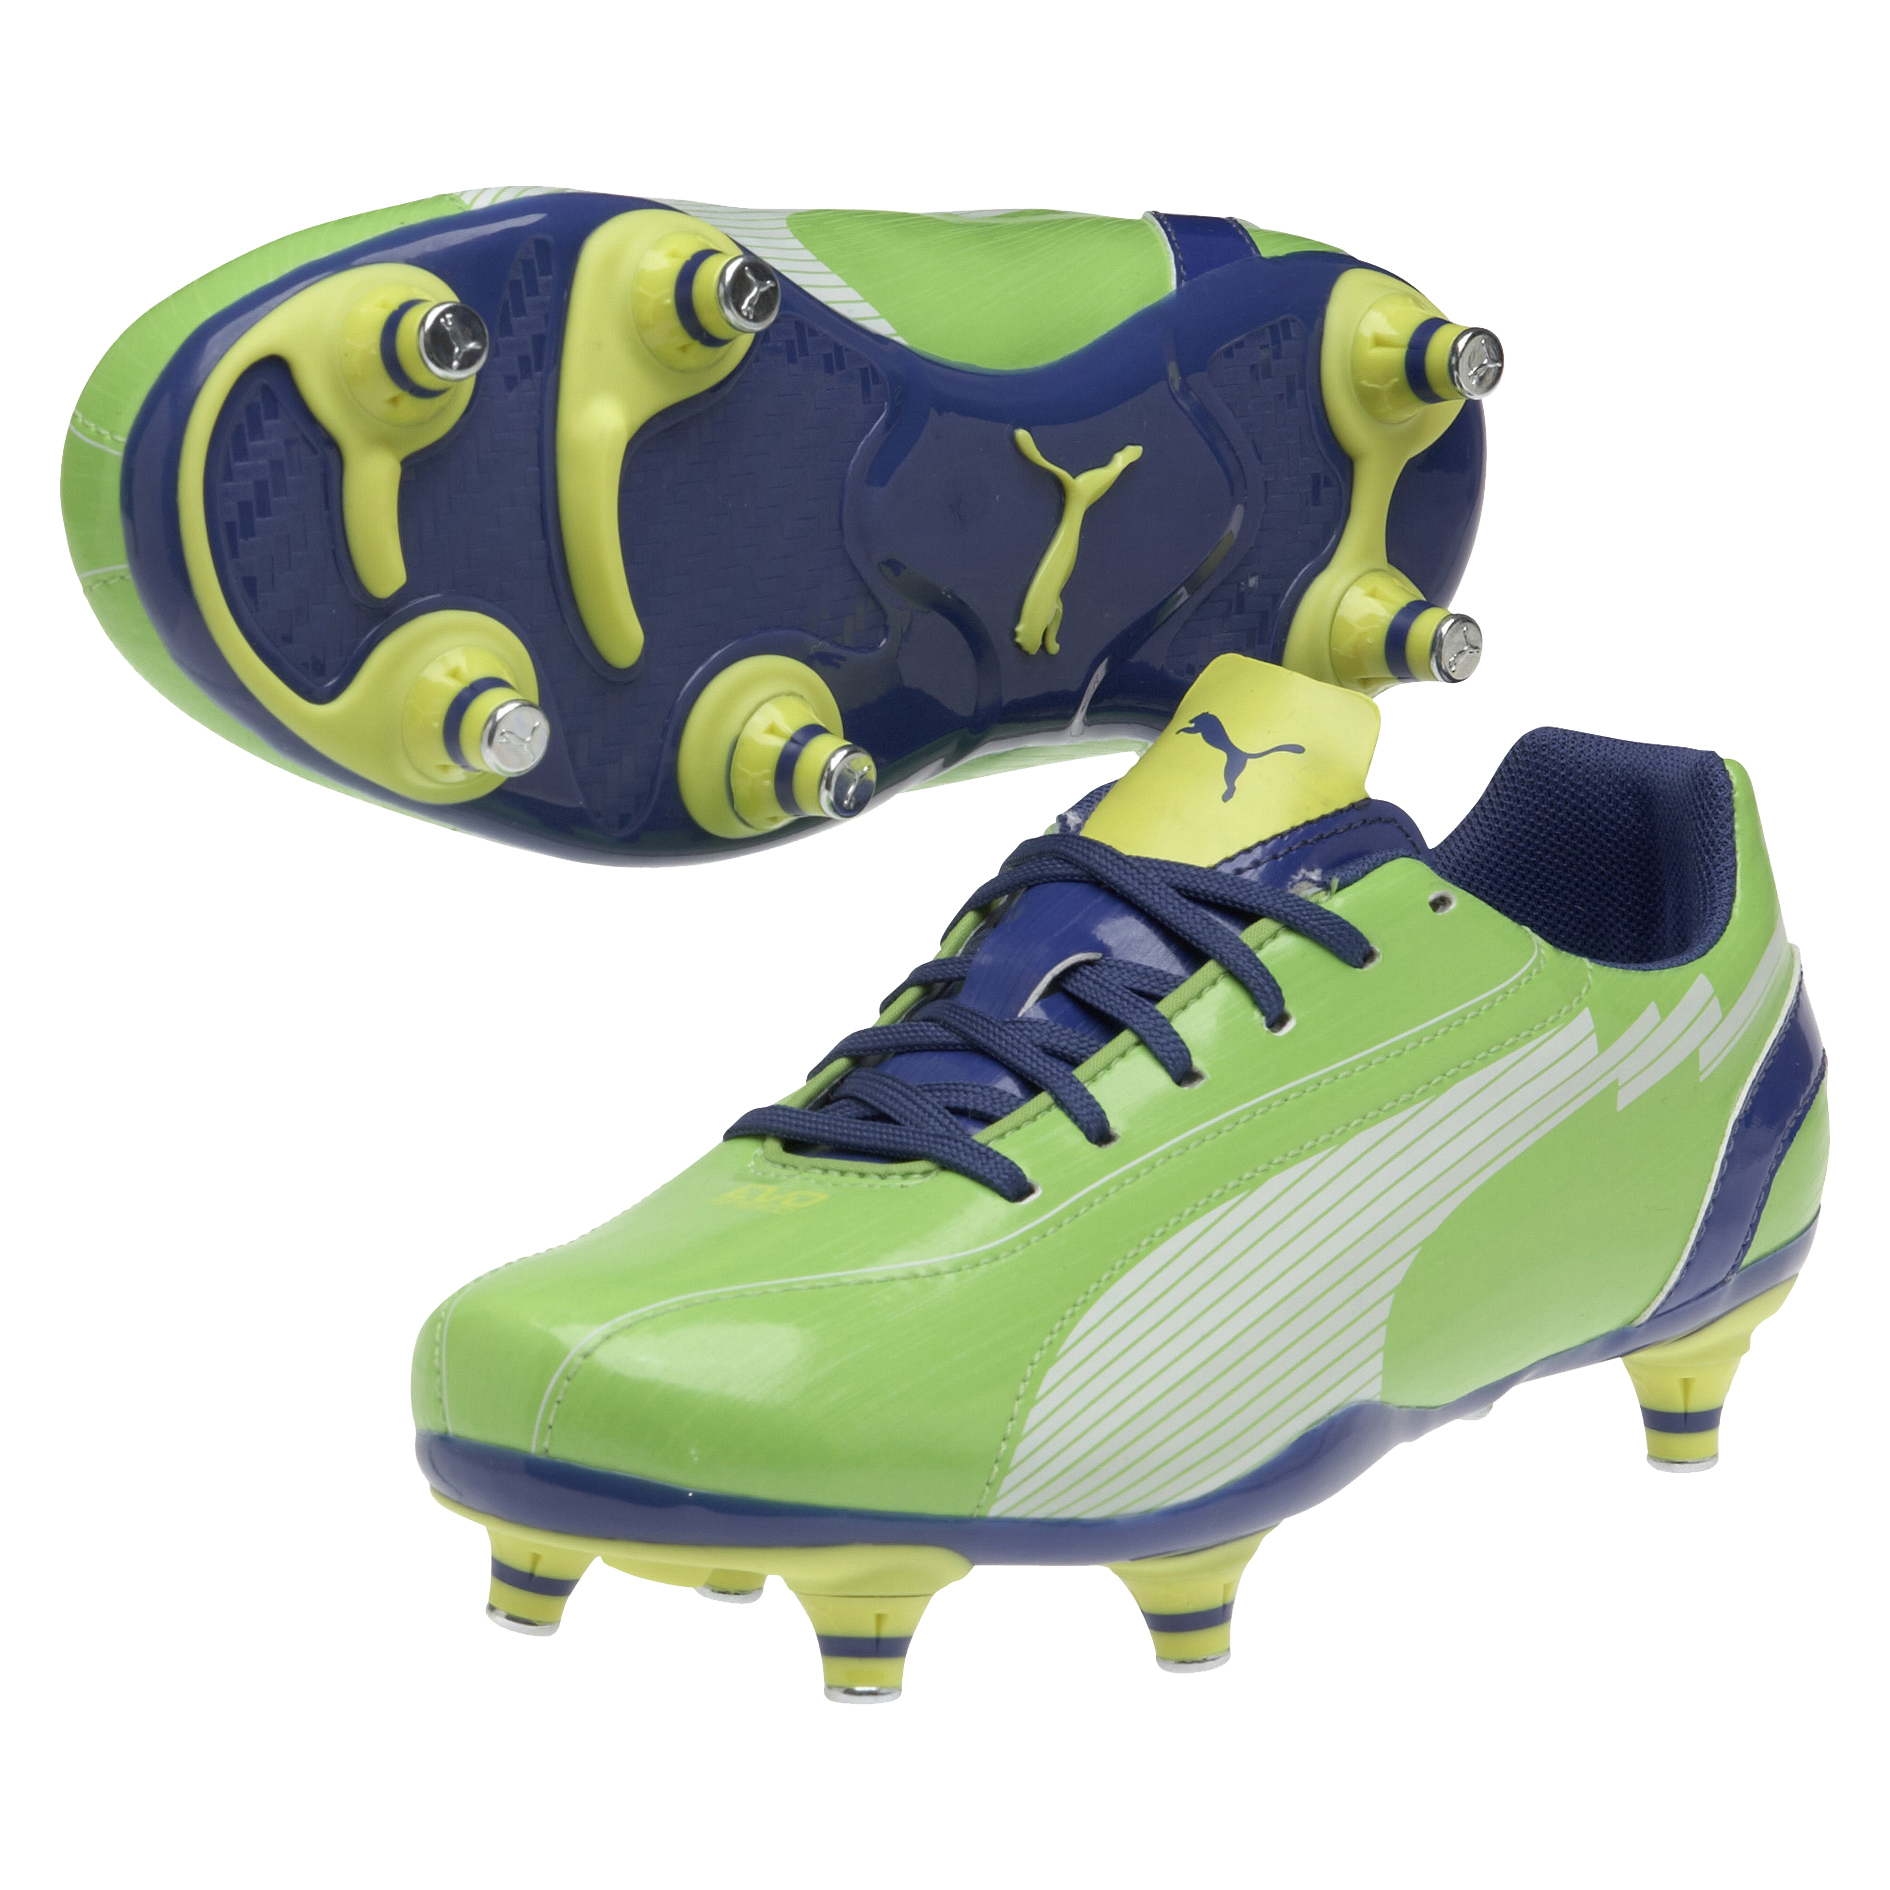 Puma evoSPEED 5 Soft Ground Football Boots - Jasmine Green/White/Monaco Blue/Fluo Yellow - Kids